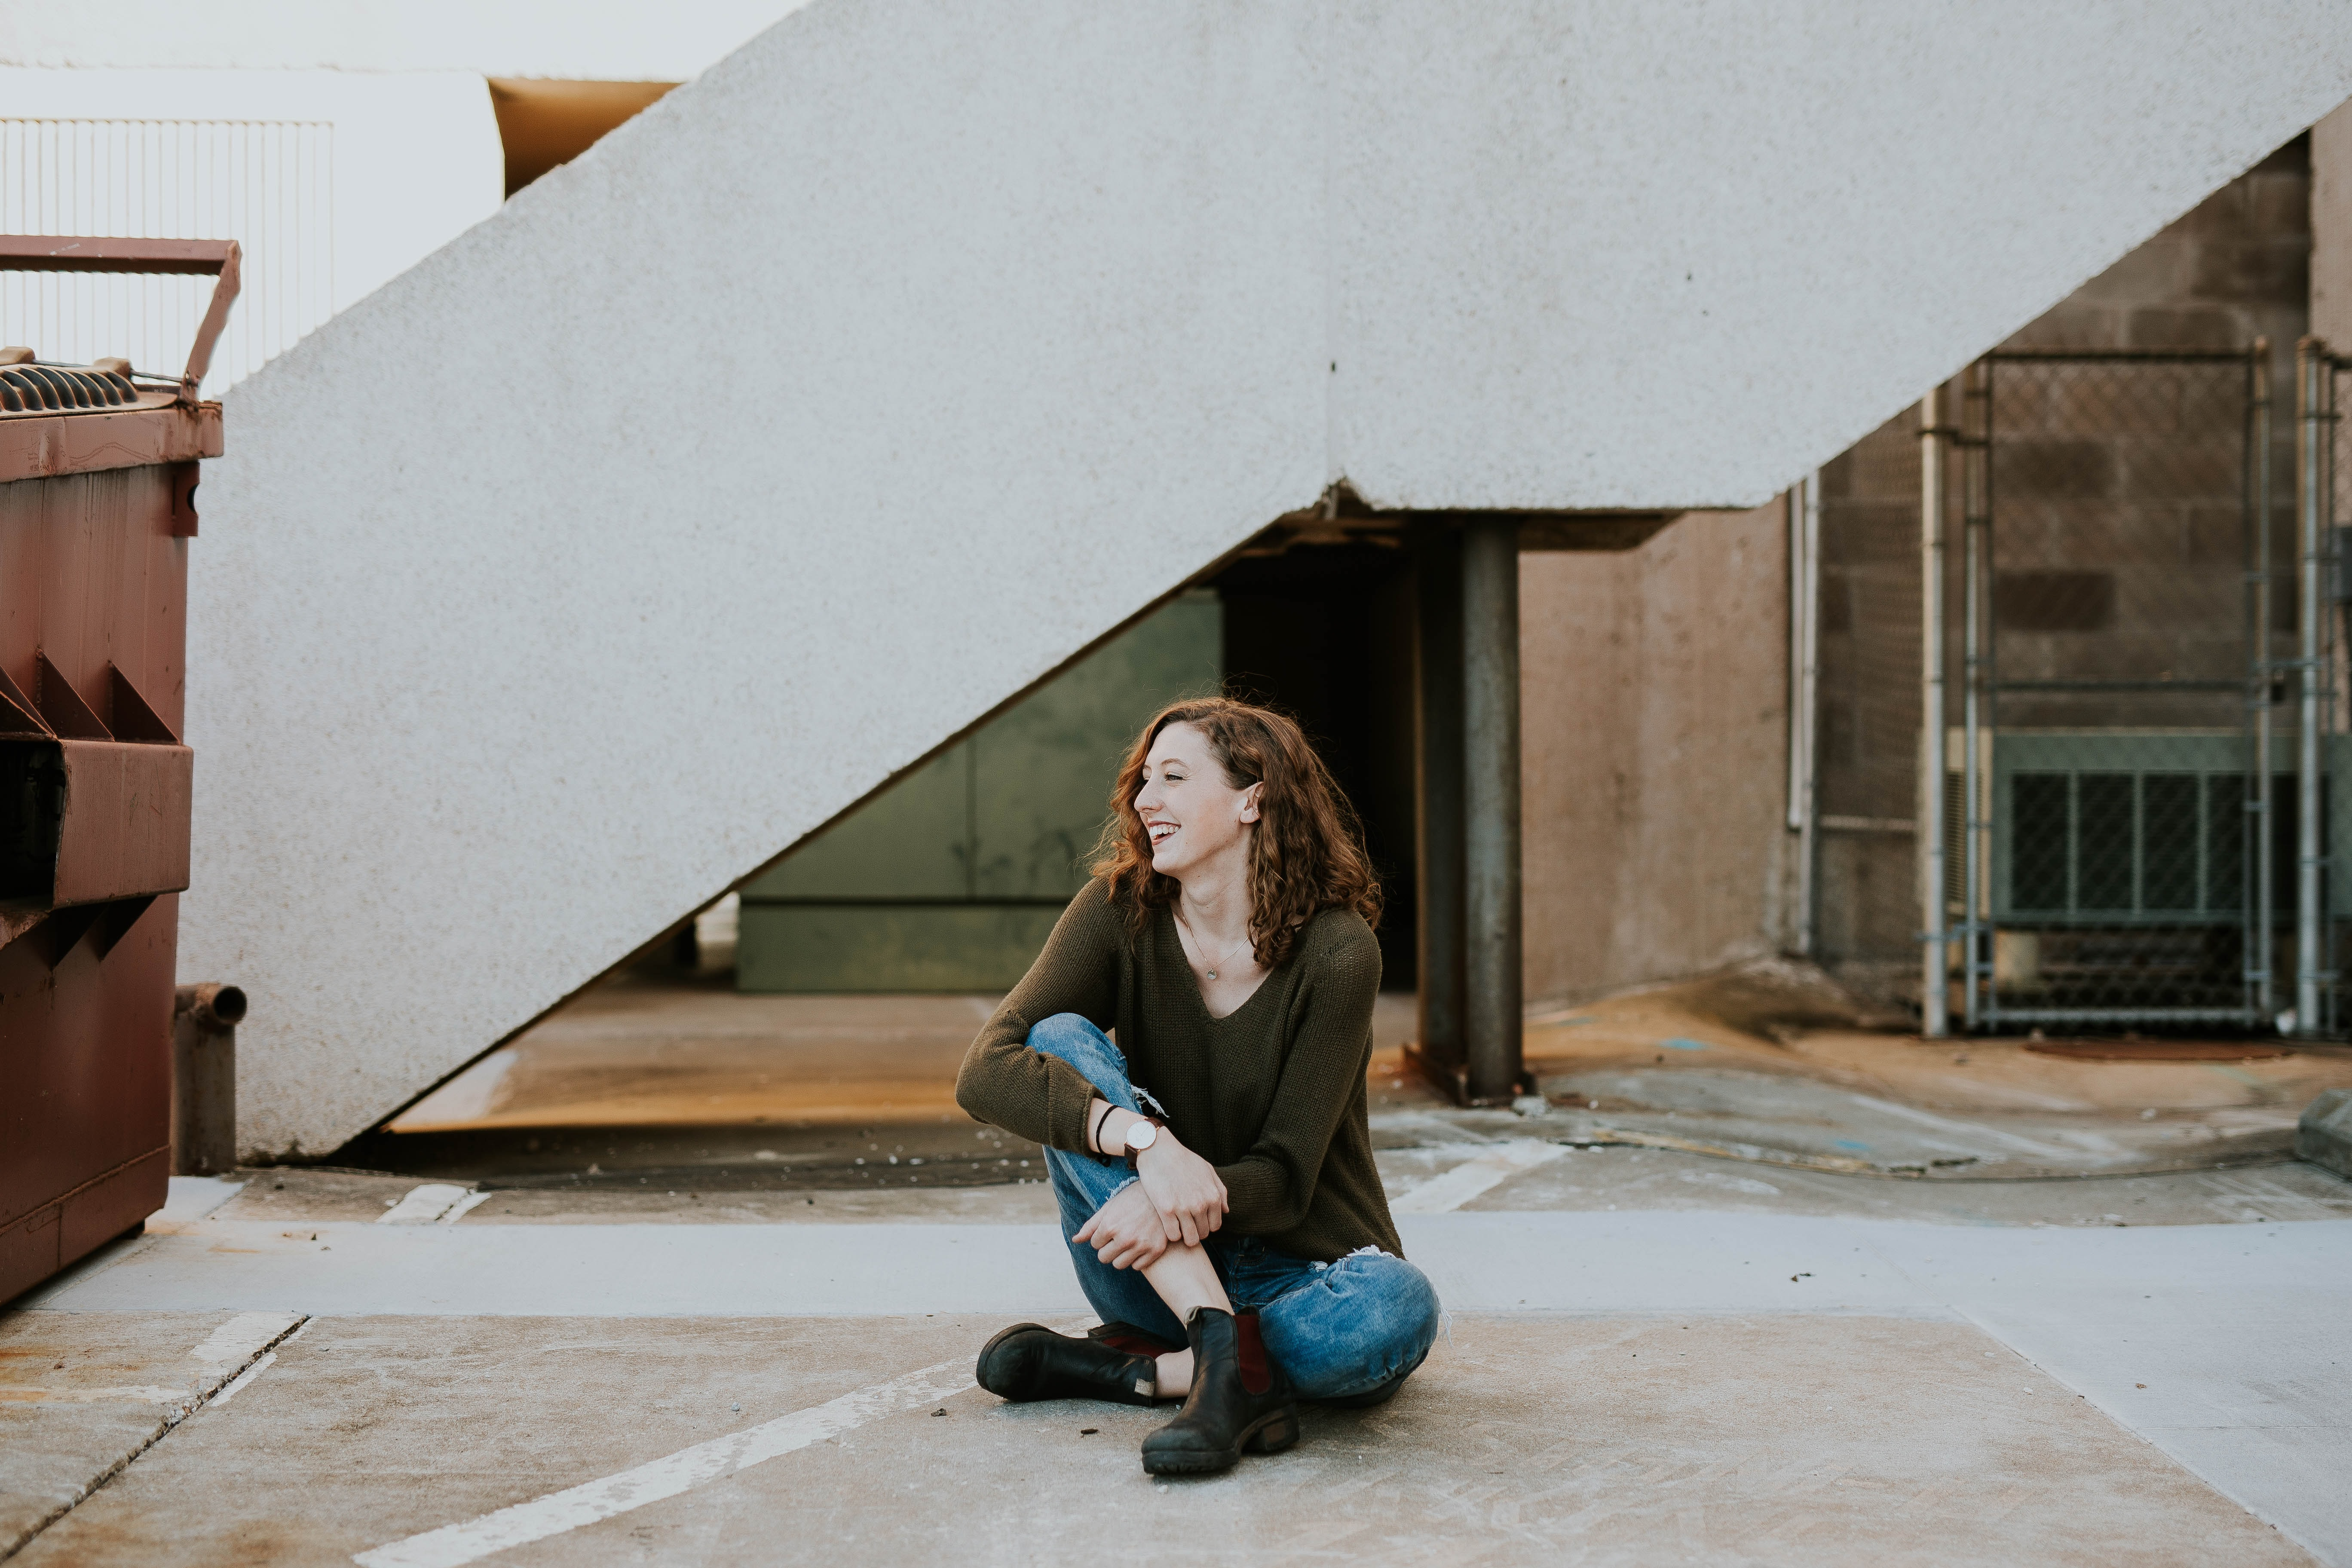 A woman laughing while sitting on a concrete floor